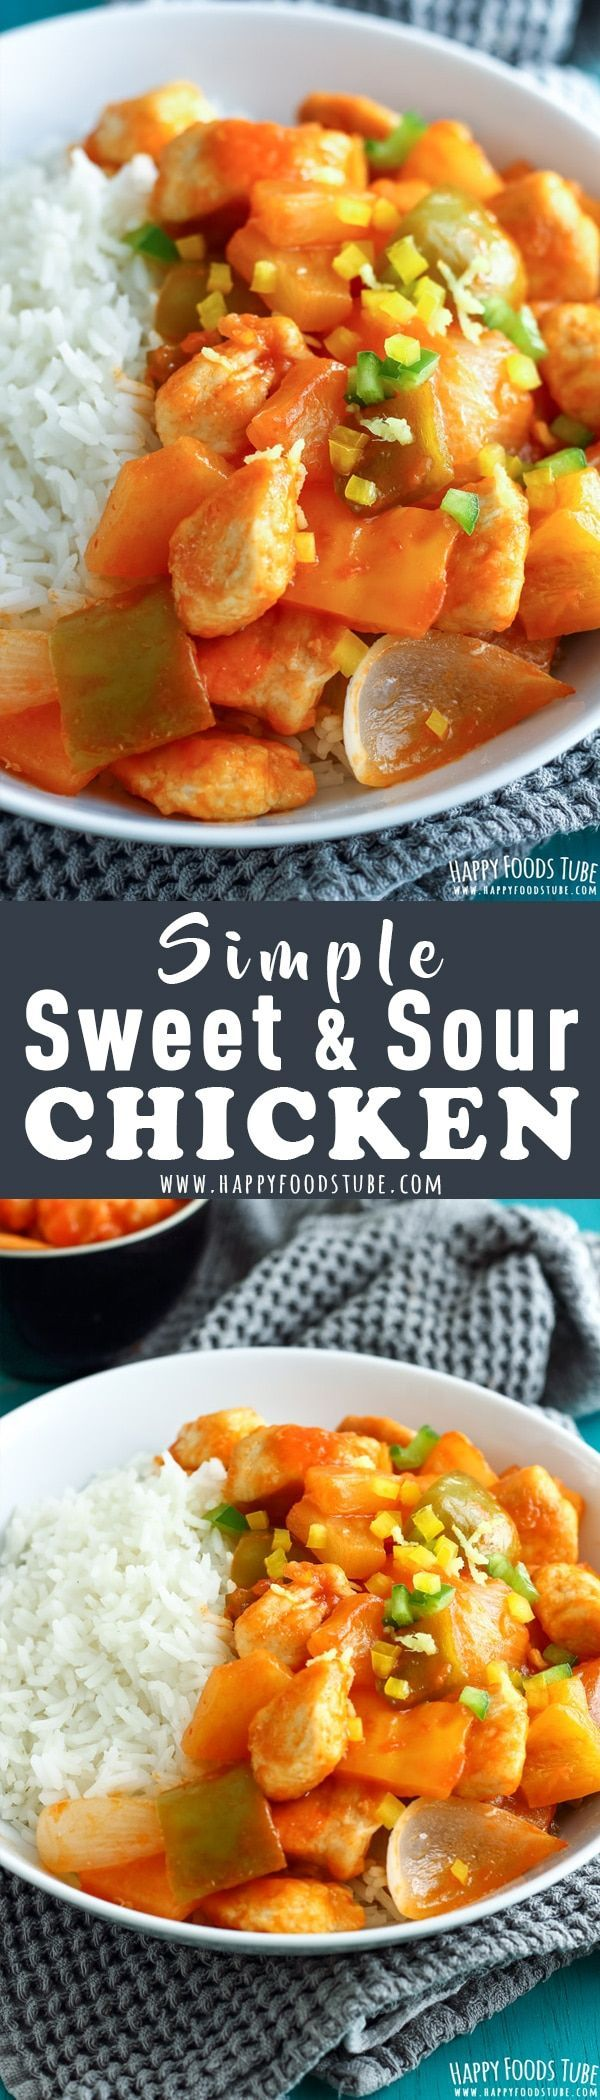 This simple sweet and sour chicken dinner is the perfect weeknight meal. Juicy chicken pieces with pineapple and peppers are ready on your table in 30 minutes!